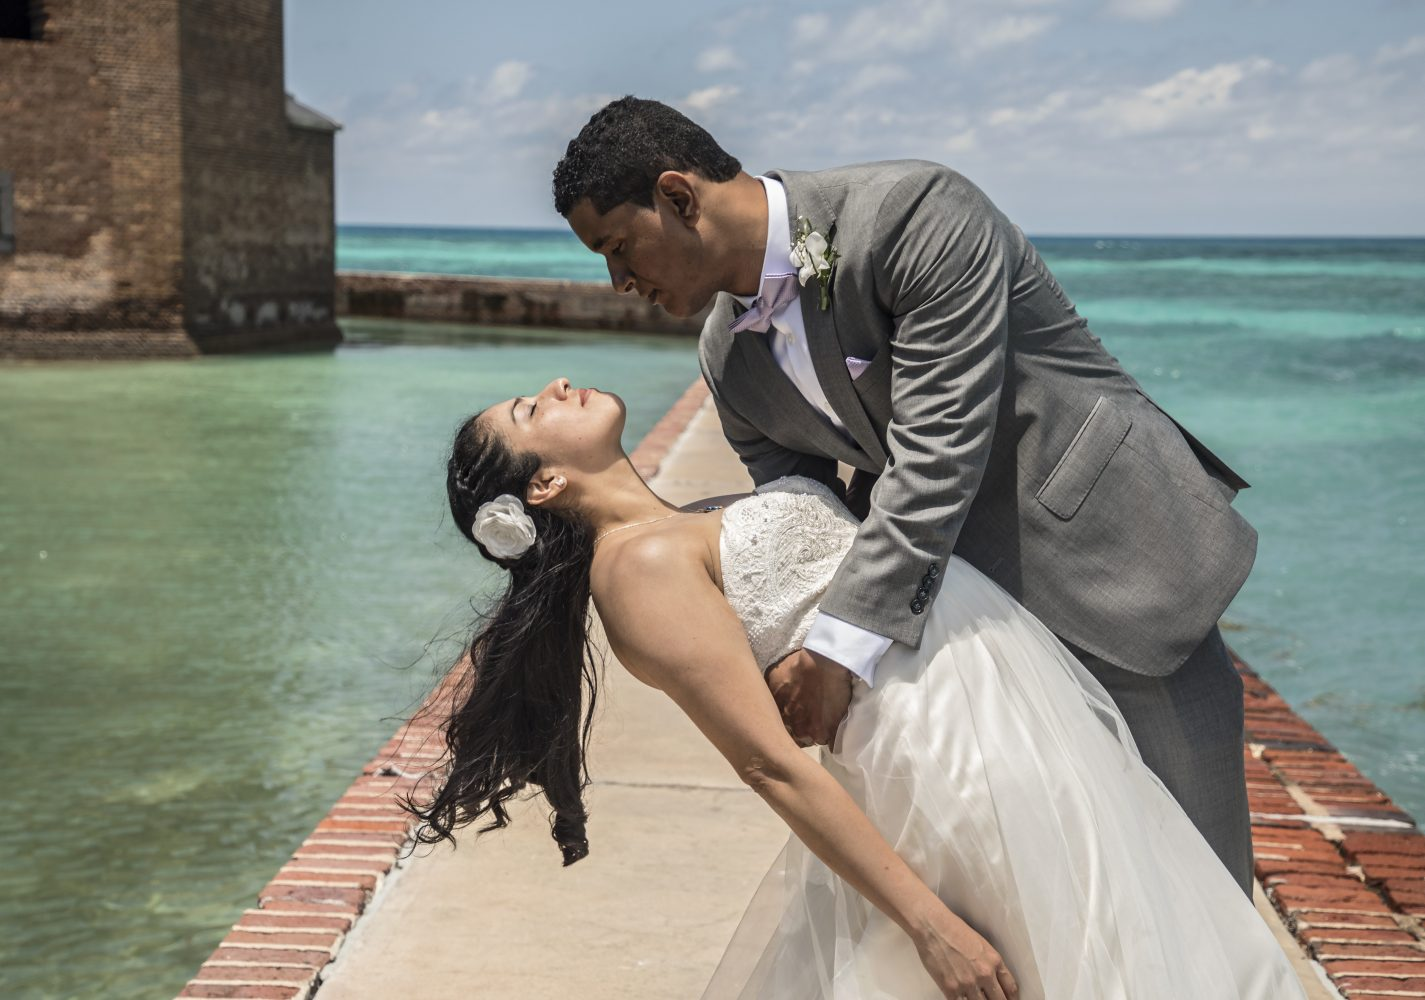 Susana + Jorge | Dry Tortugas National Park l Key West, Florida